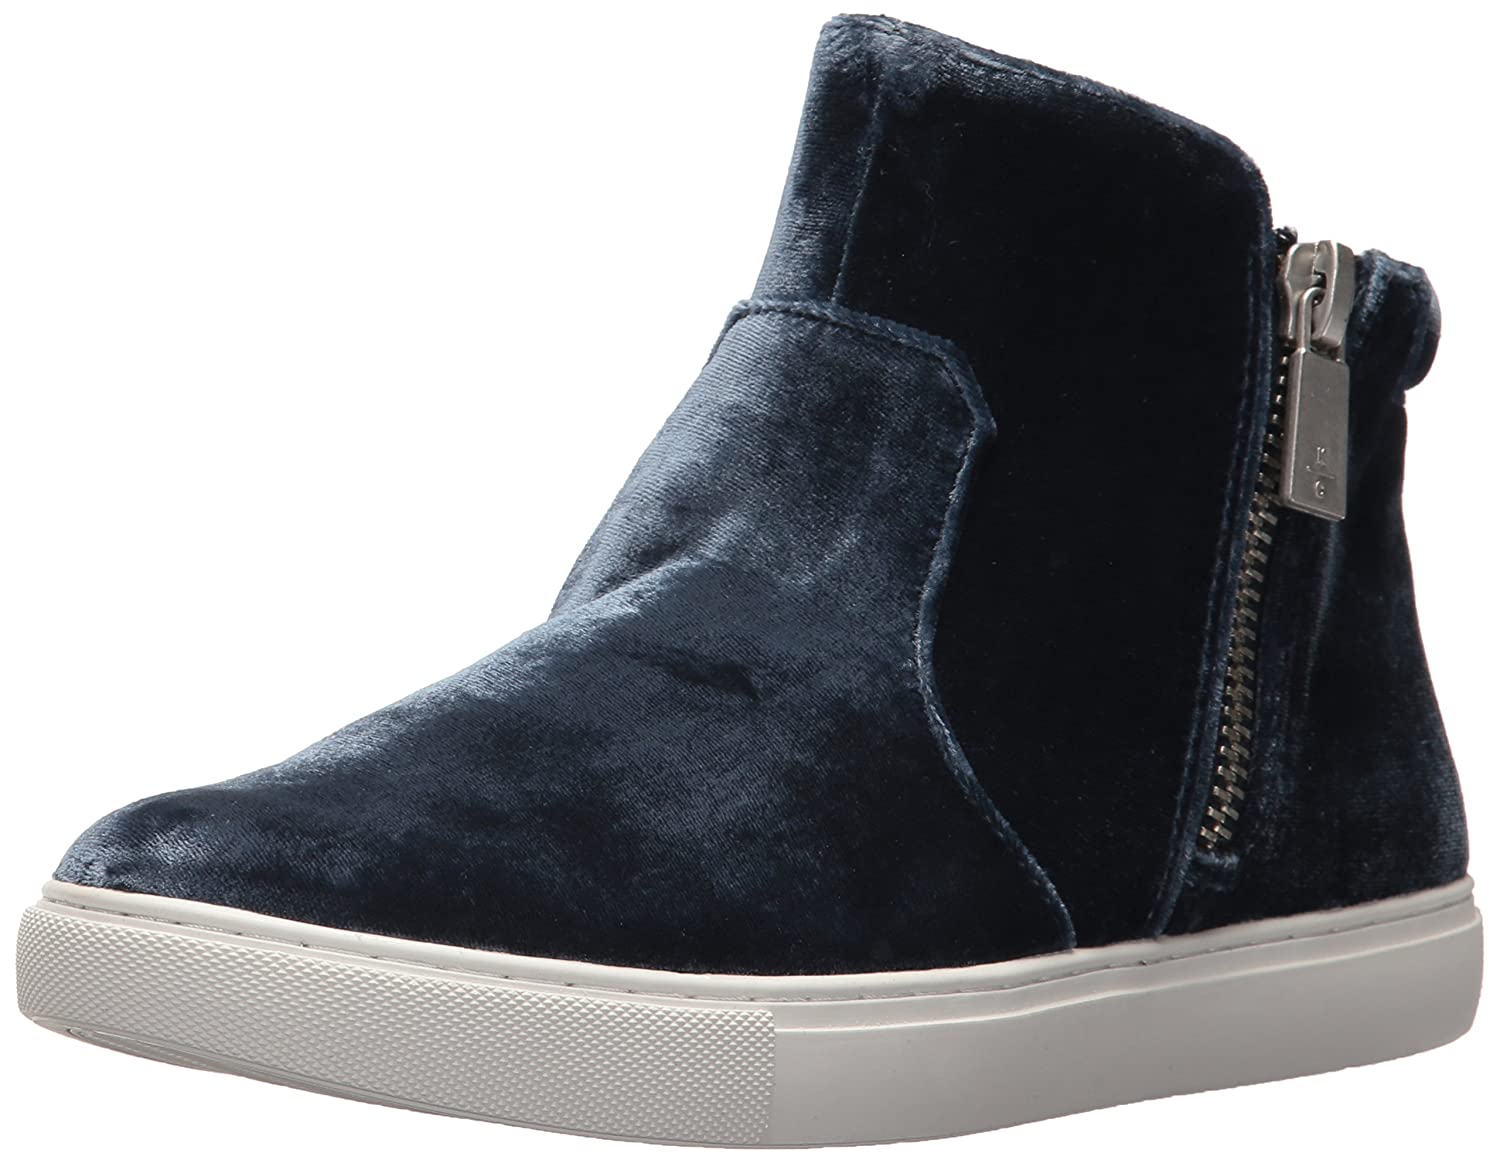 Kenneth Cole New York Women's Kiera Double Zip Mid-Top Velvet Sneaker B073XKB3D6 5 B(M) US|Indigo